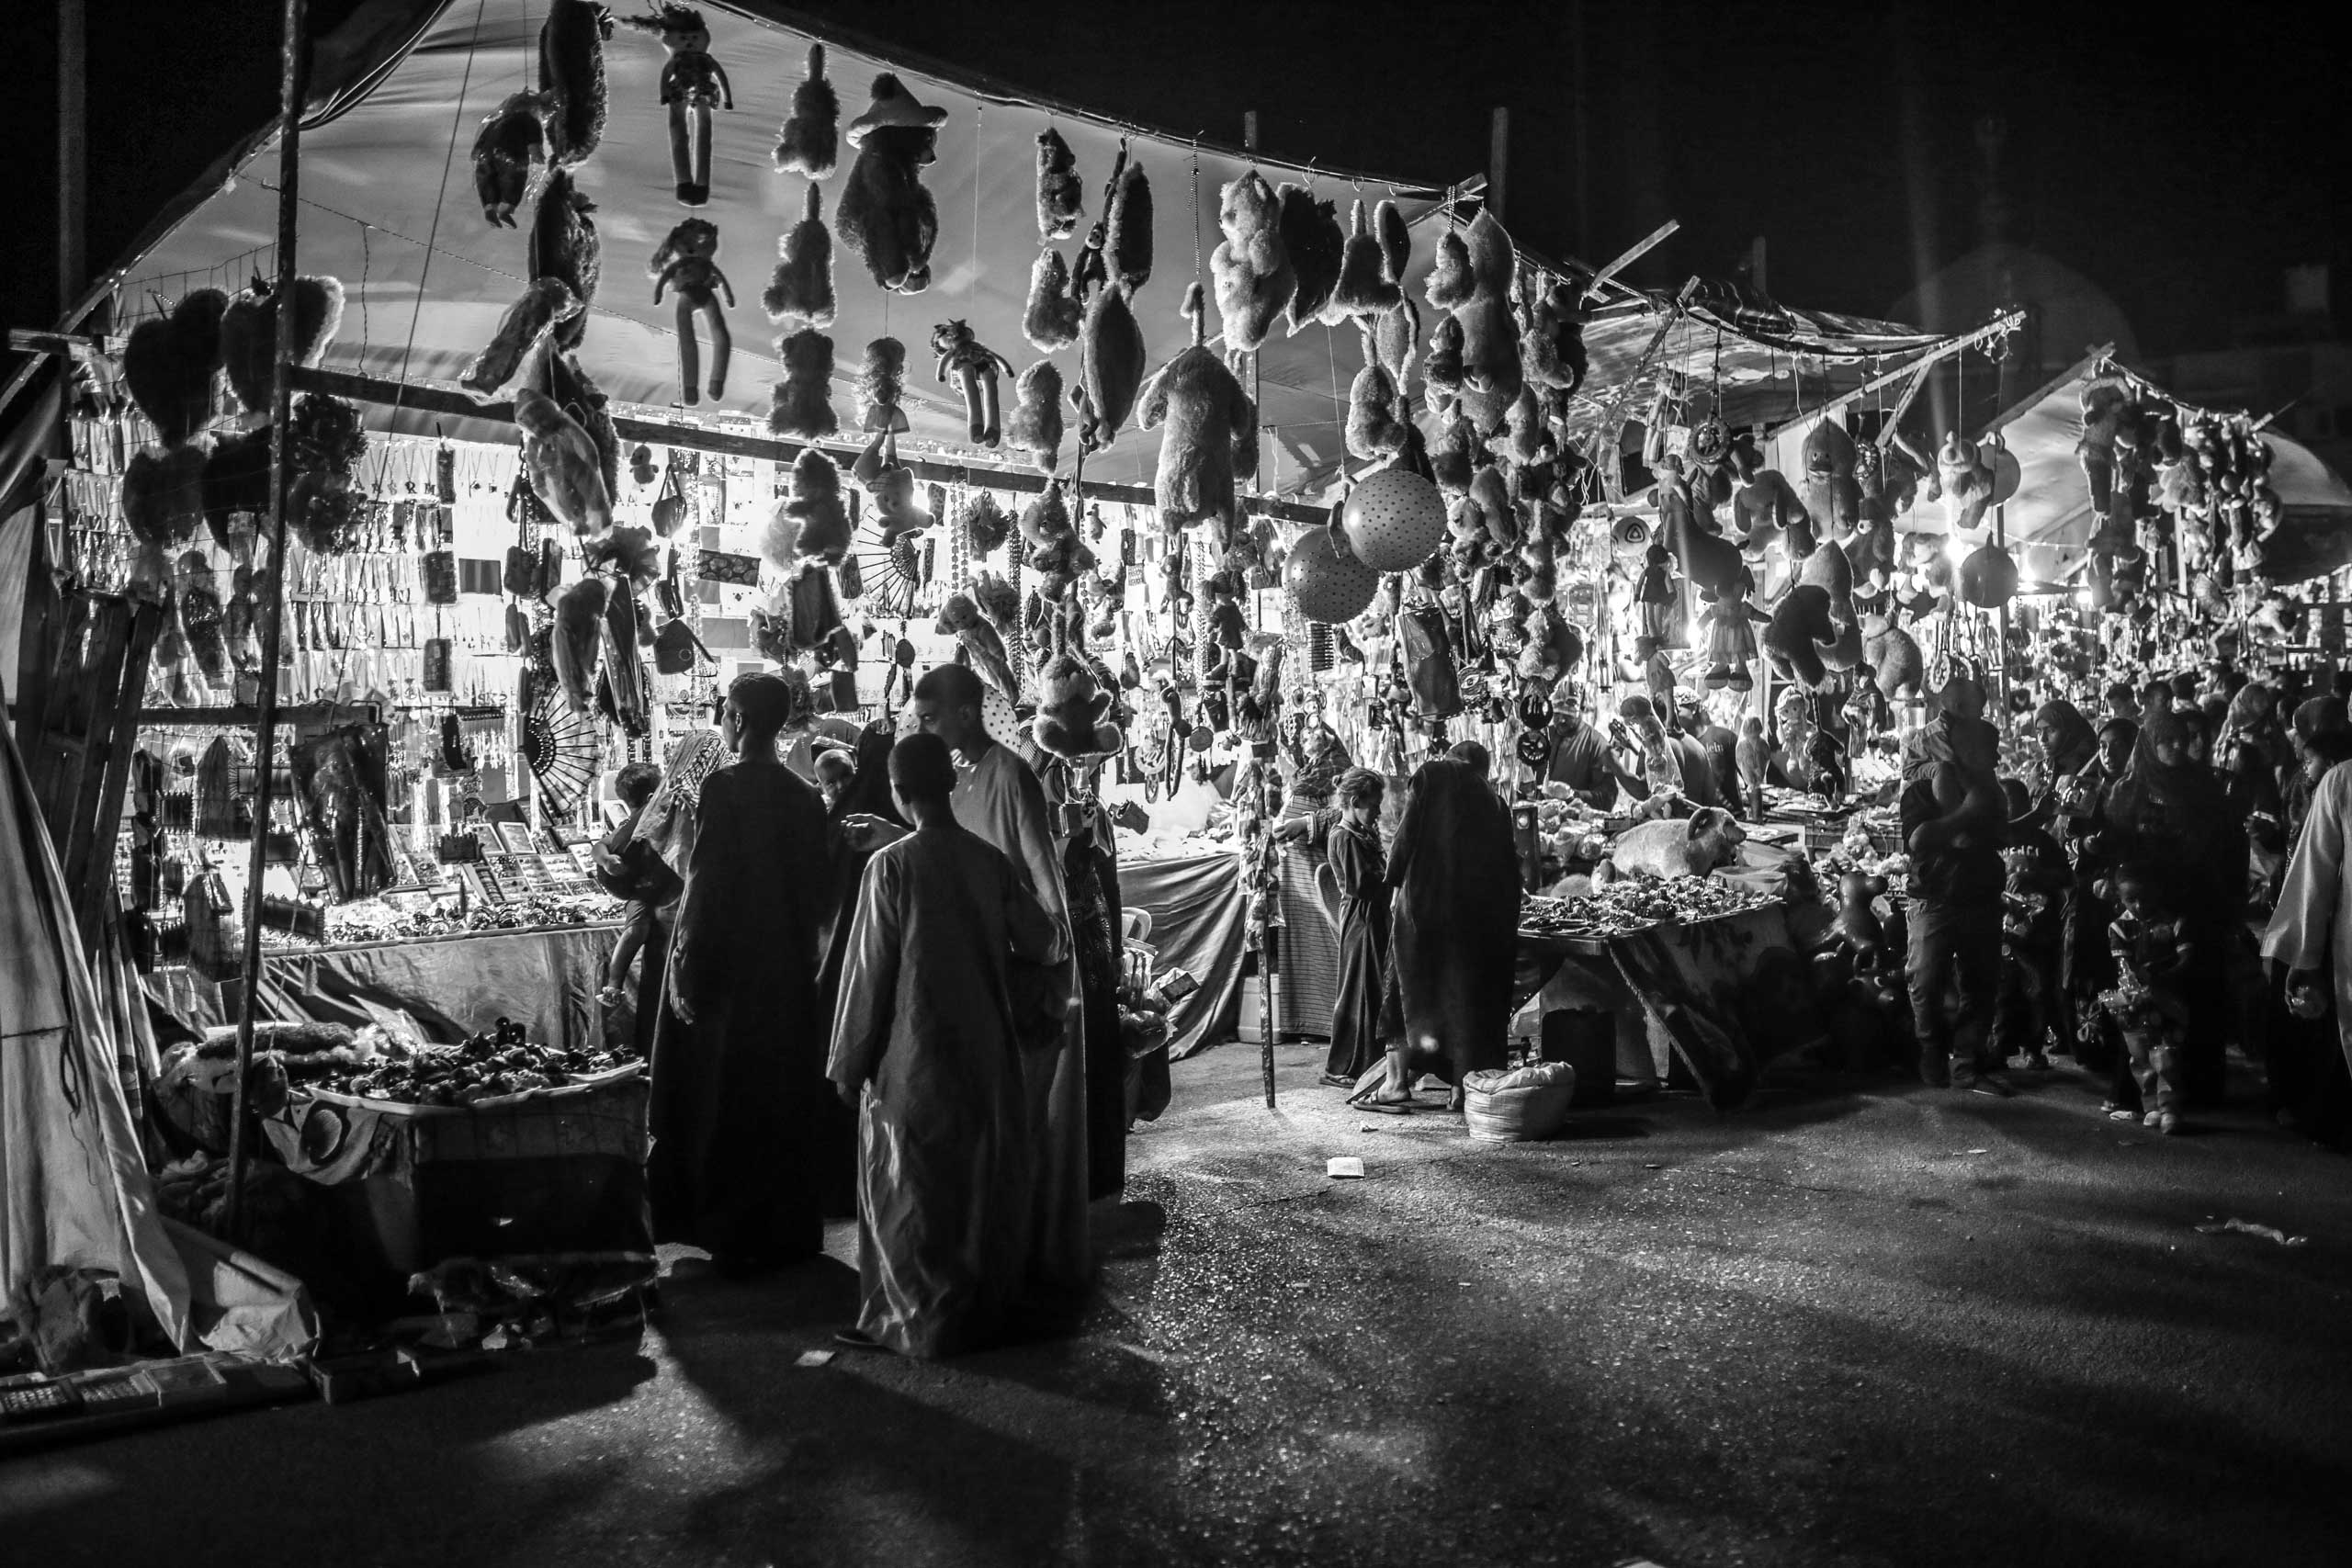 Attendees outside the Abul-Hassan Al-Shazly mosque shop for cheap merchandise during the weeklong celebration. Humaithara, Red Sea Governorate, Egypt. Sept. 30, 2014.